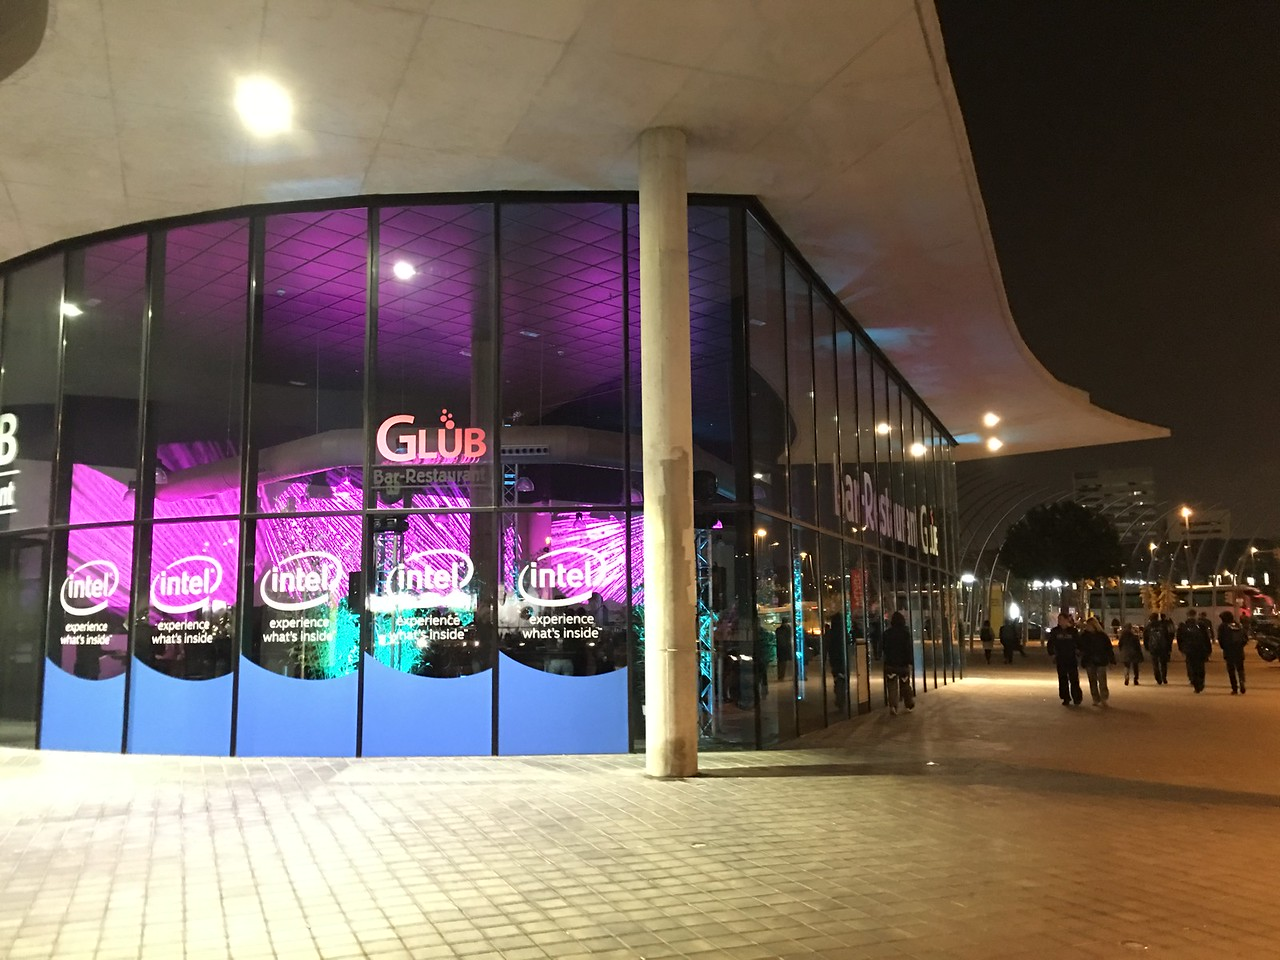 A venue of 180m2 with branding opportunity